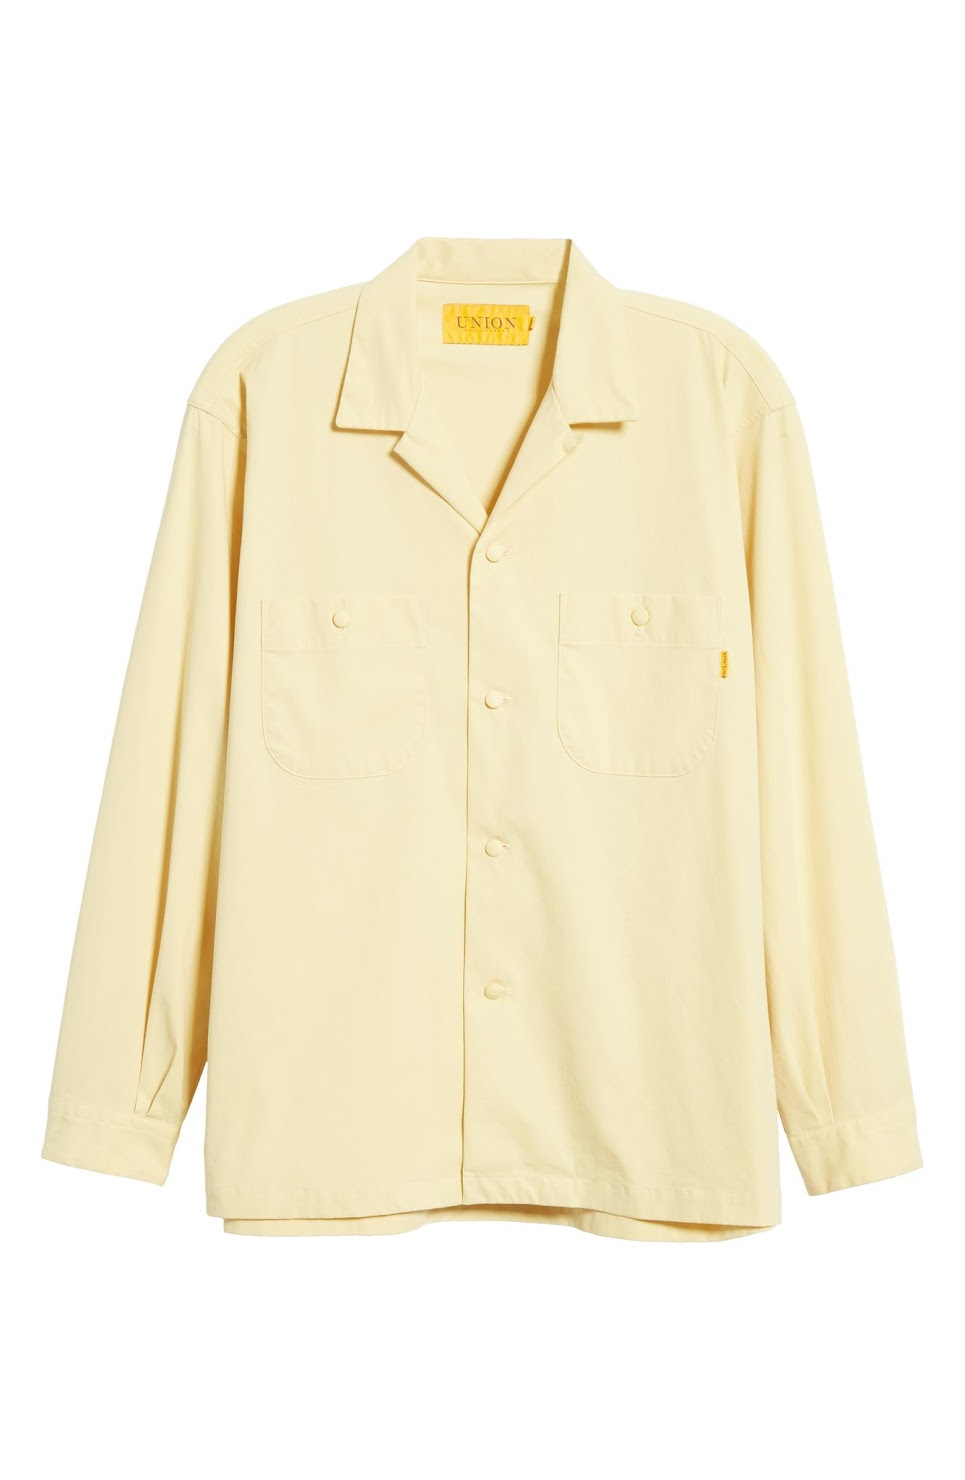 Union_Button Down_Sunshine_$220.jpeg